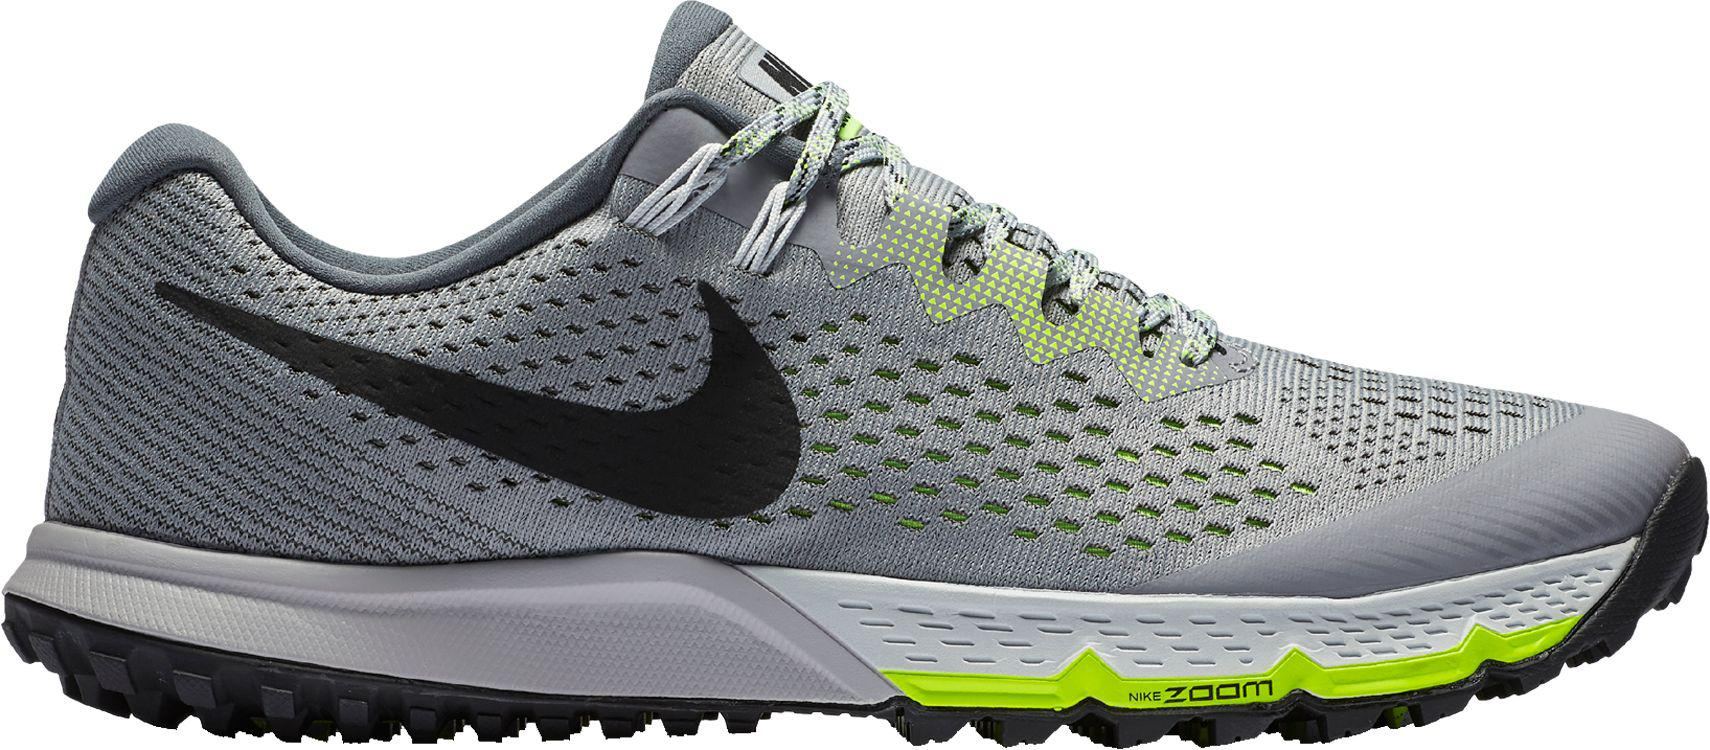 2641e7d4337 Lyst - Nike Air Zoom Terra Kiger 4 Trail Running Shoes in Black for Men